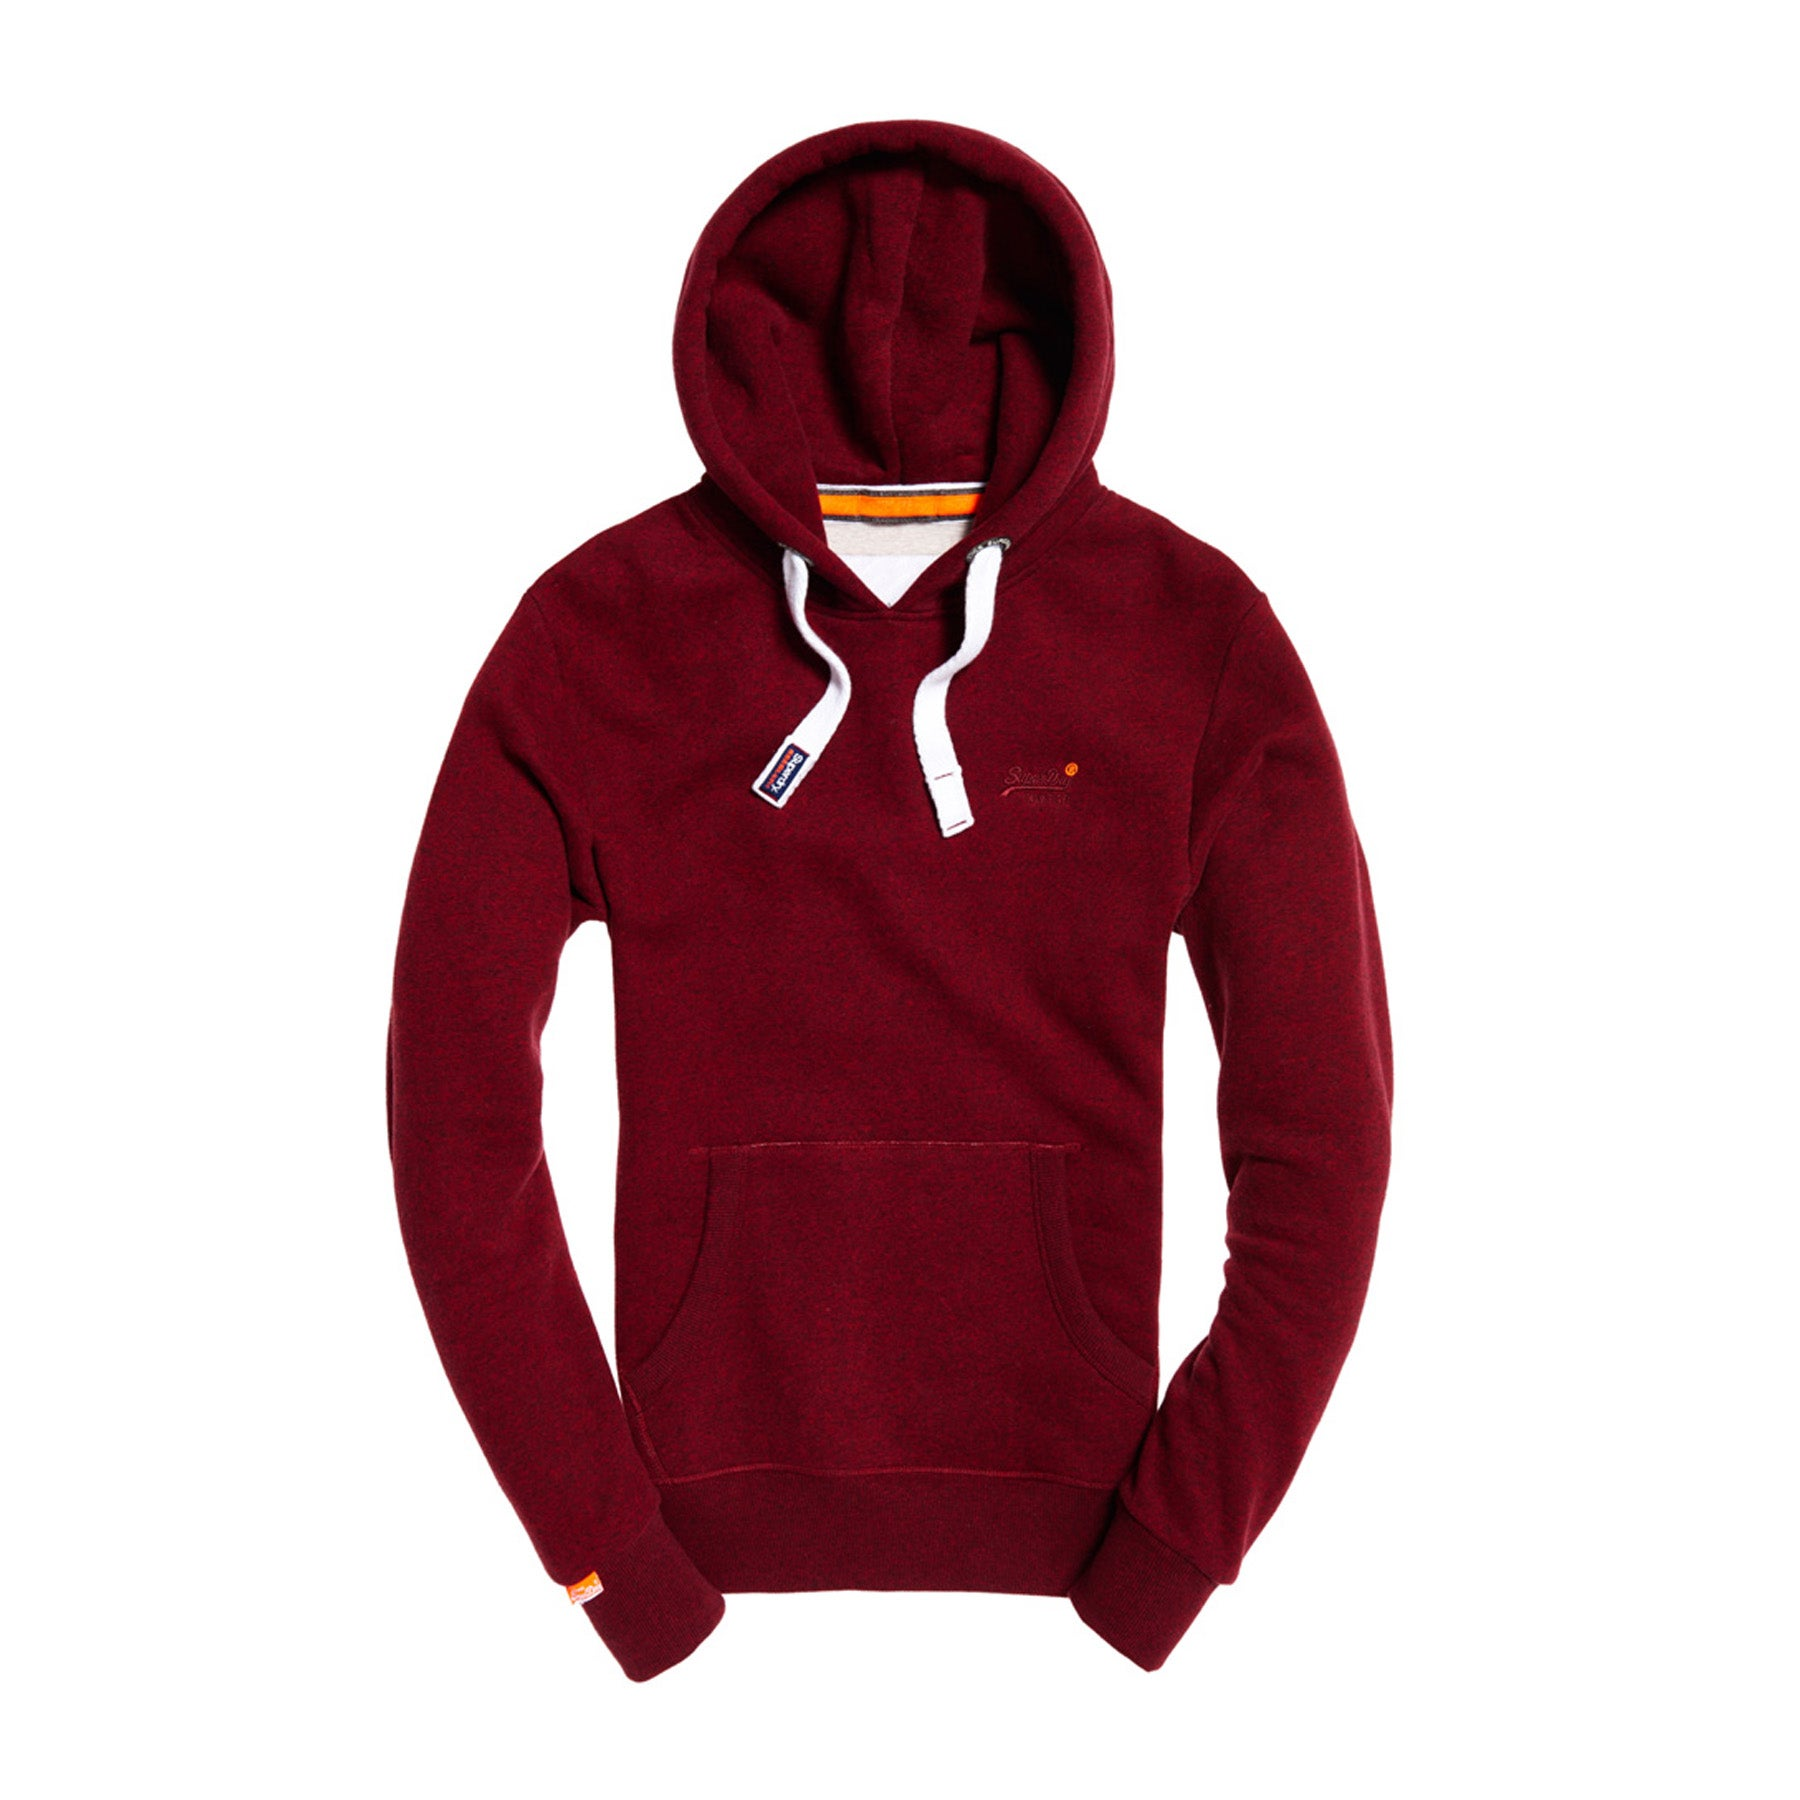 Superdry Orange Label Pullover Hoody - Bright Berry Grit